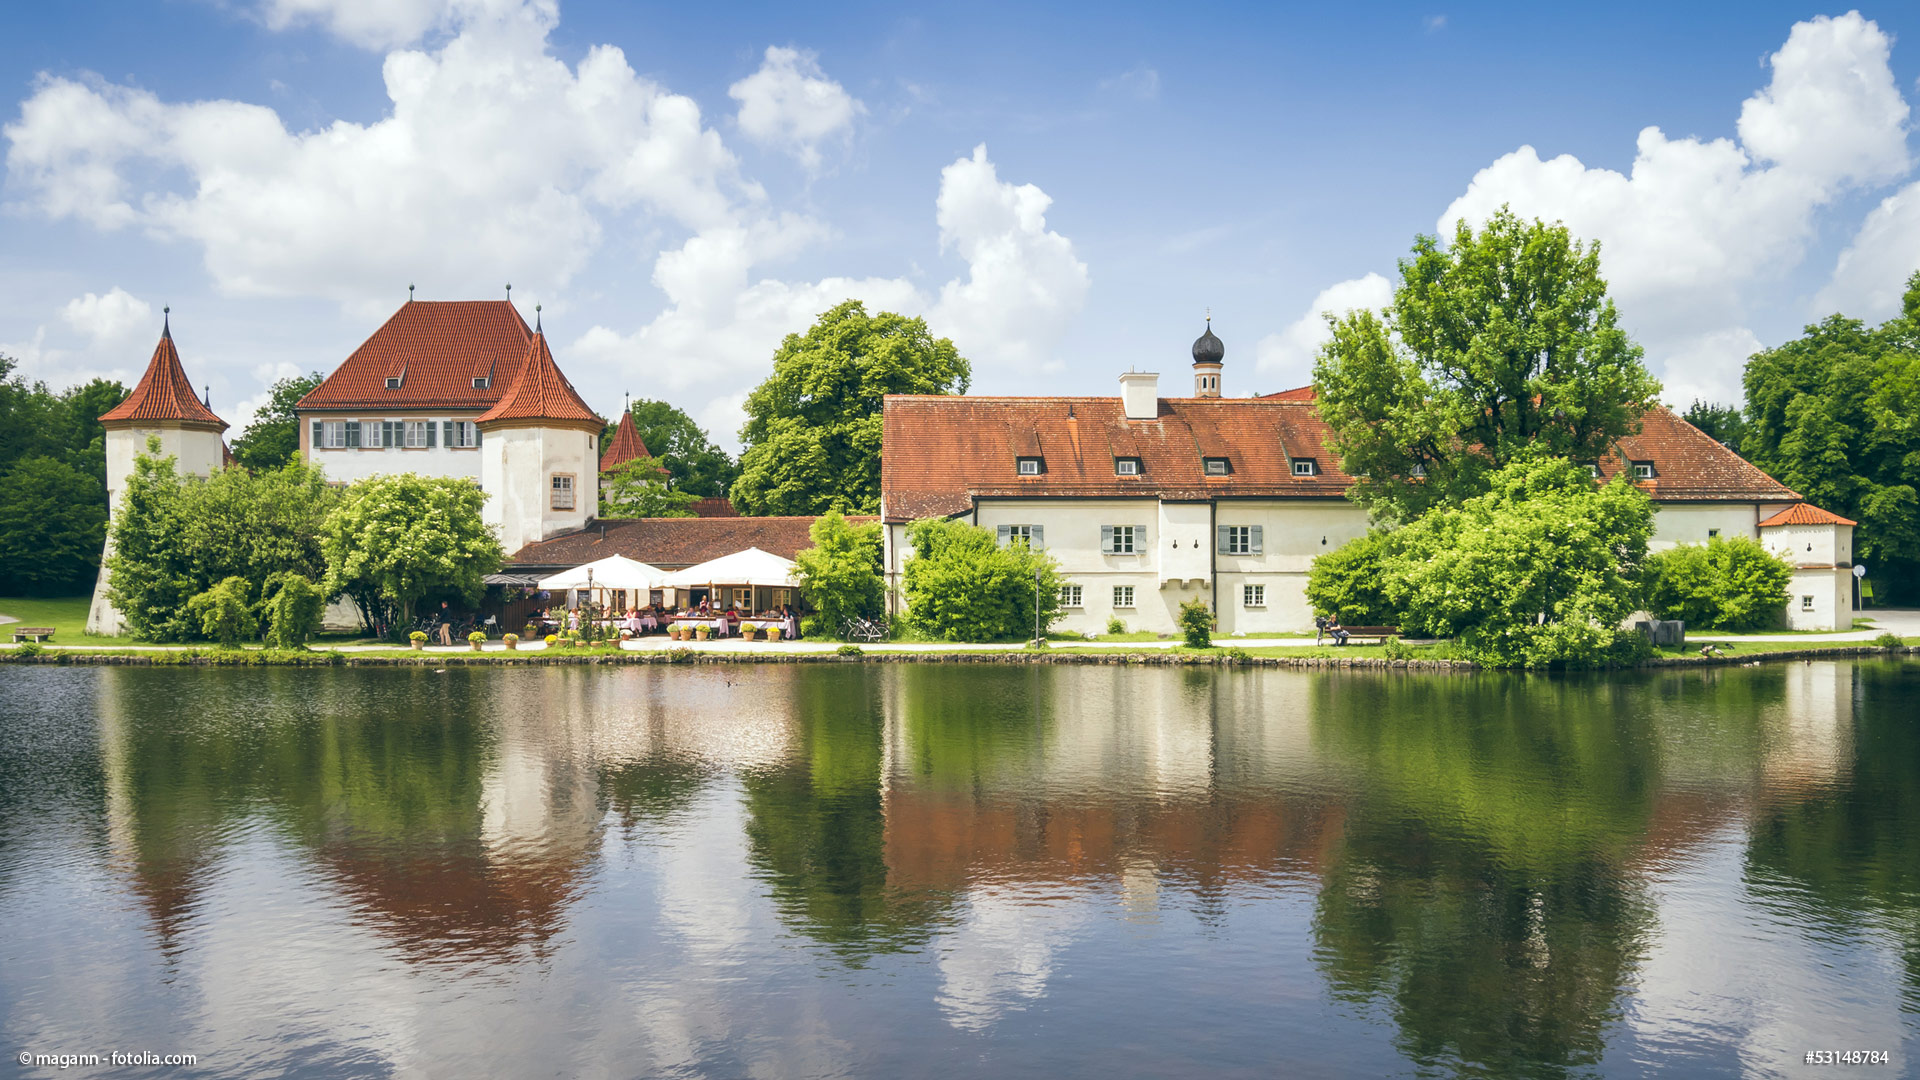 Munich as a great place to live: The district of Lochhausen